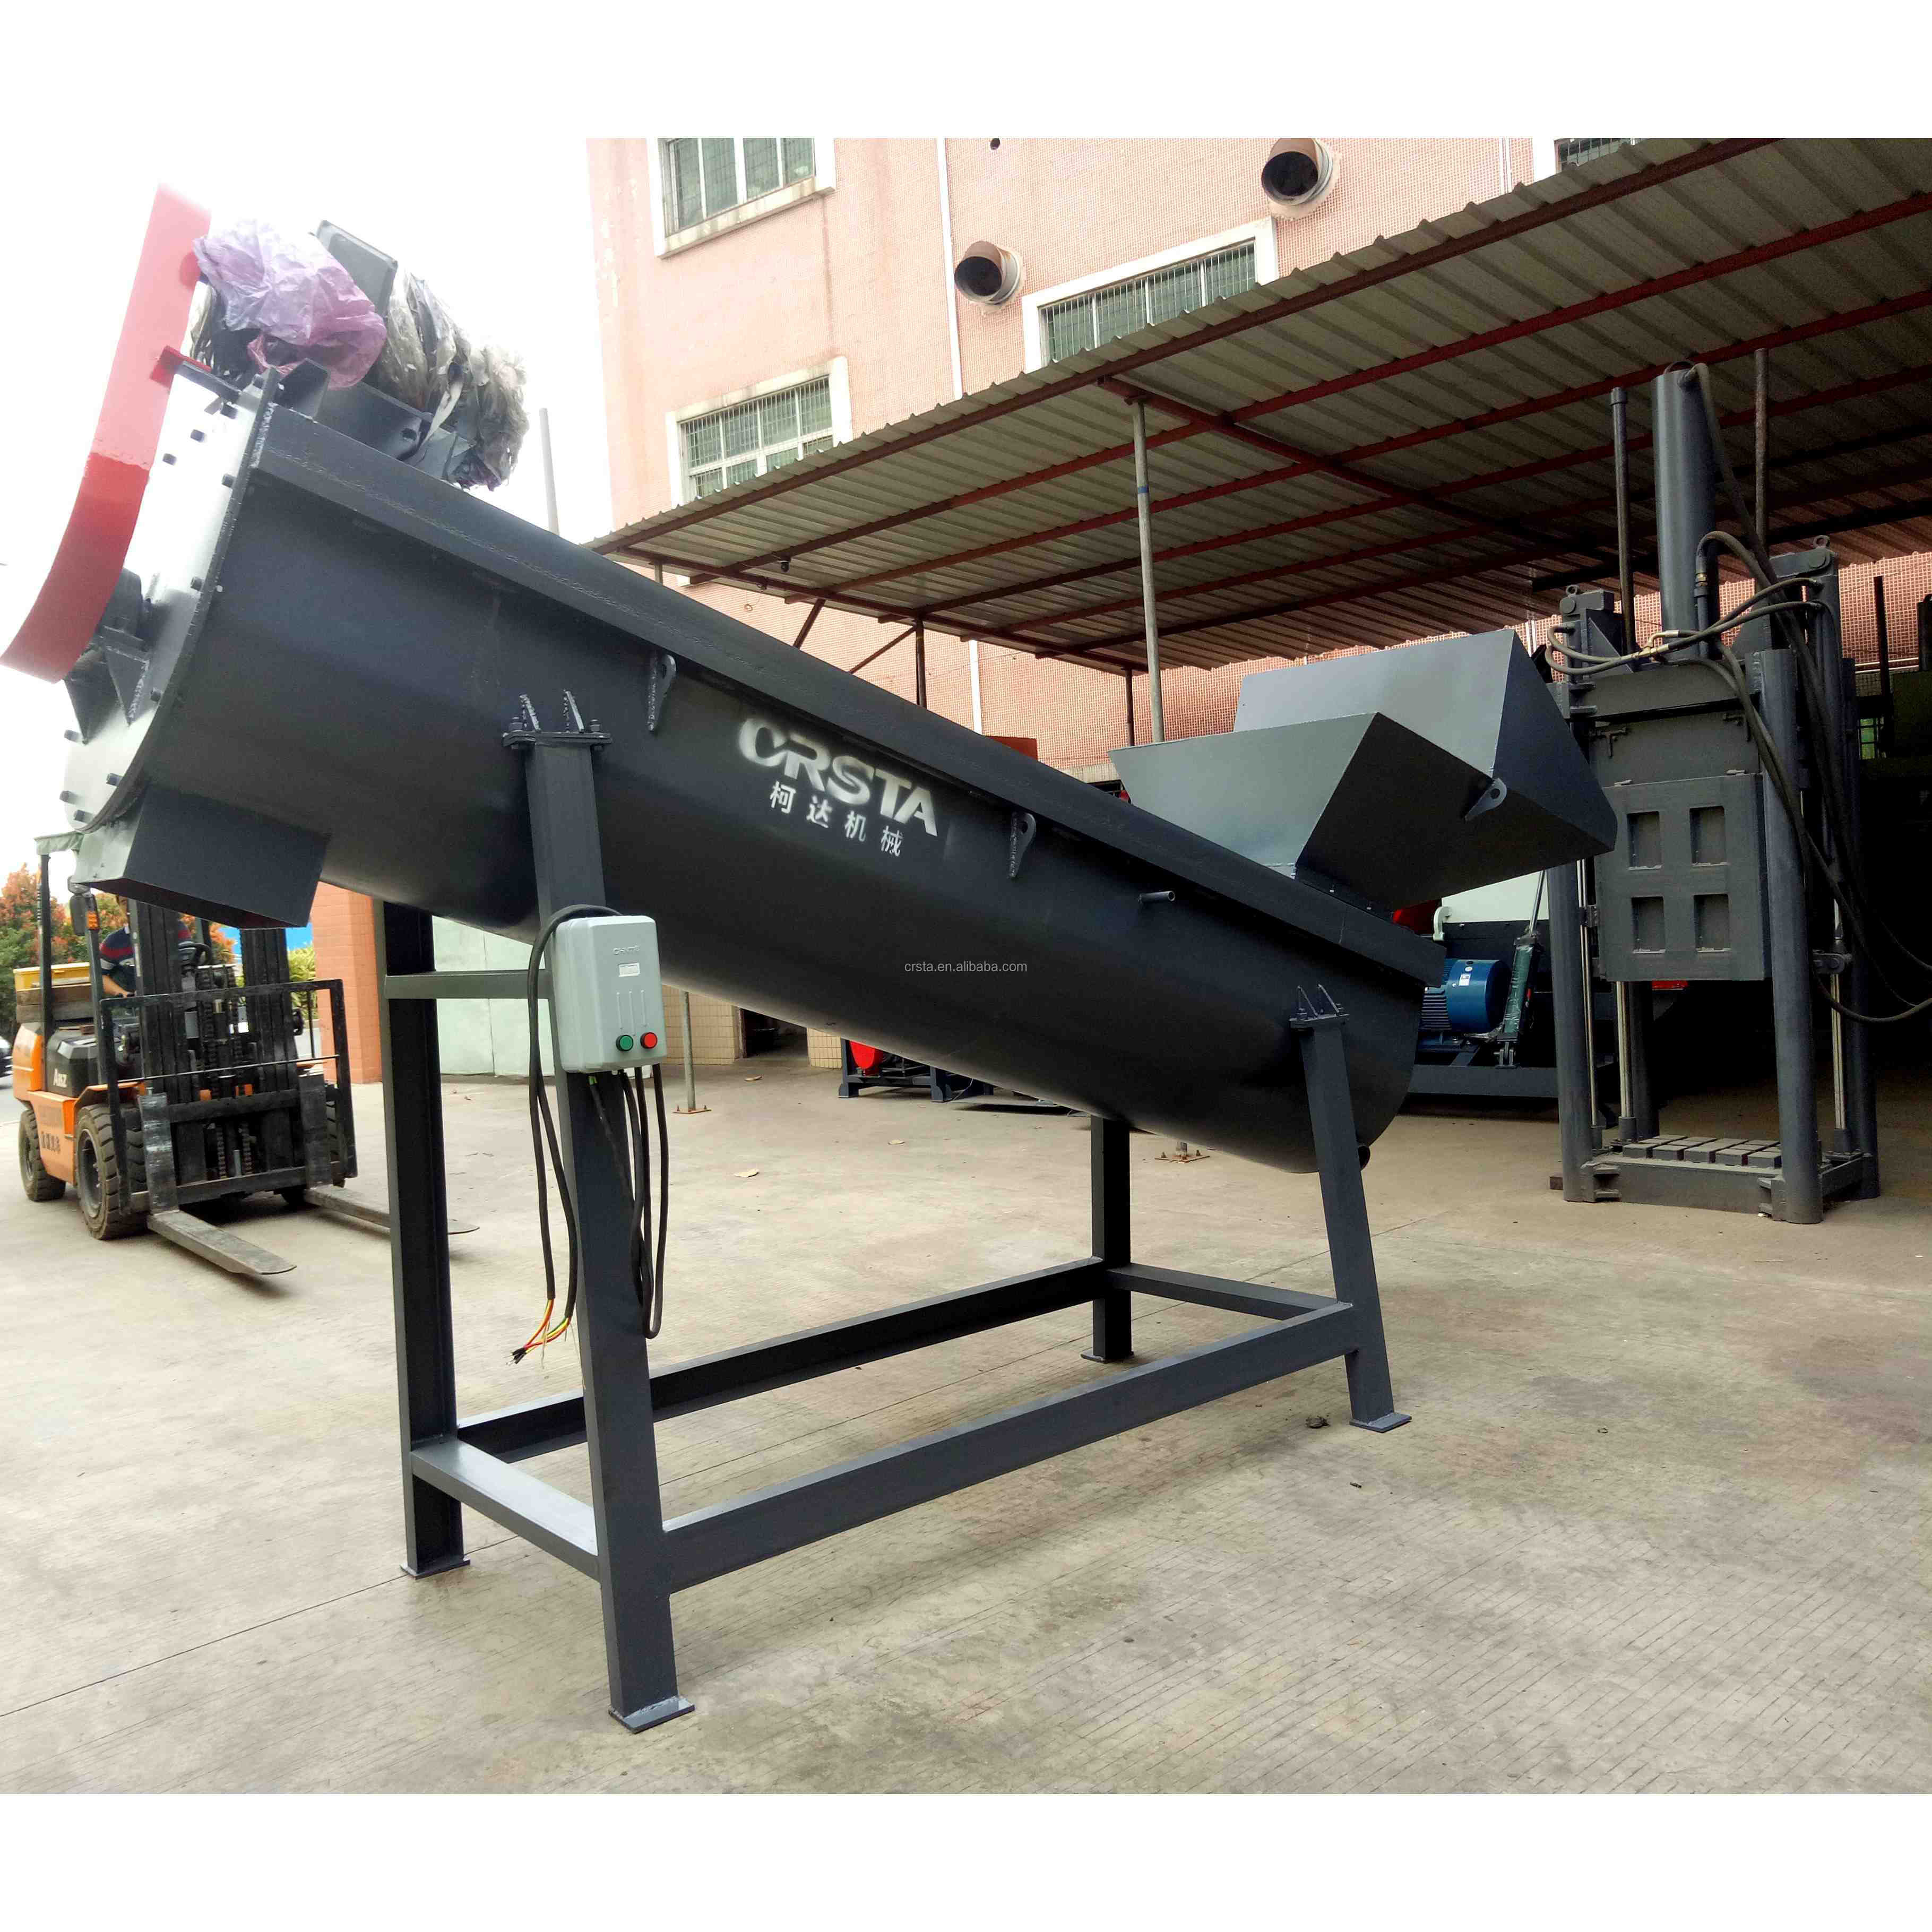 GUANGZHOU 300kg/h Waste PE Film PP Bags Friction Washer/ PE Film friction washing machine